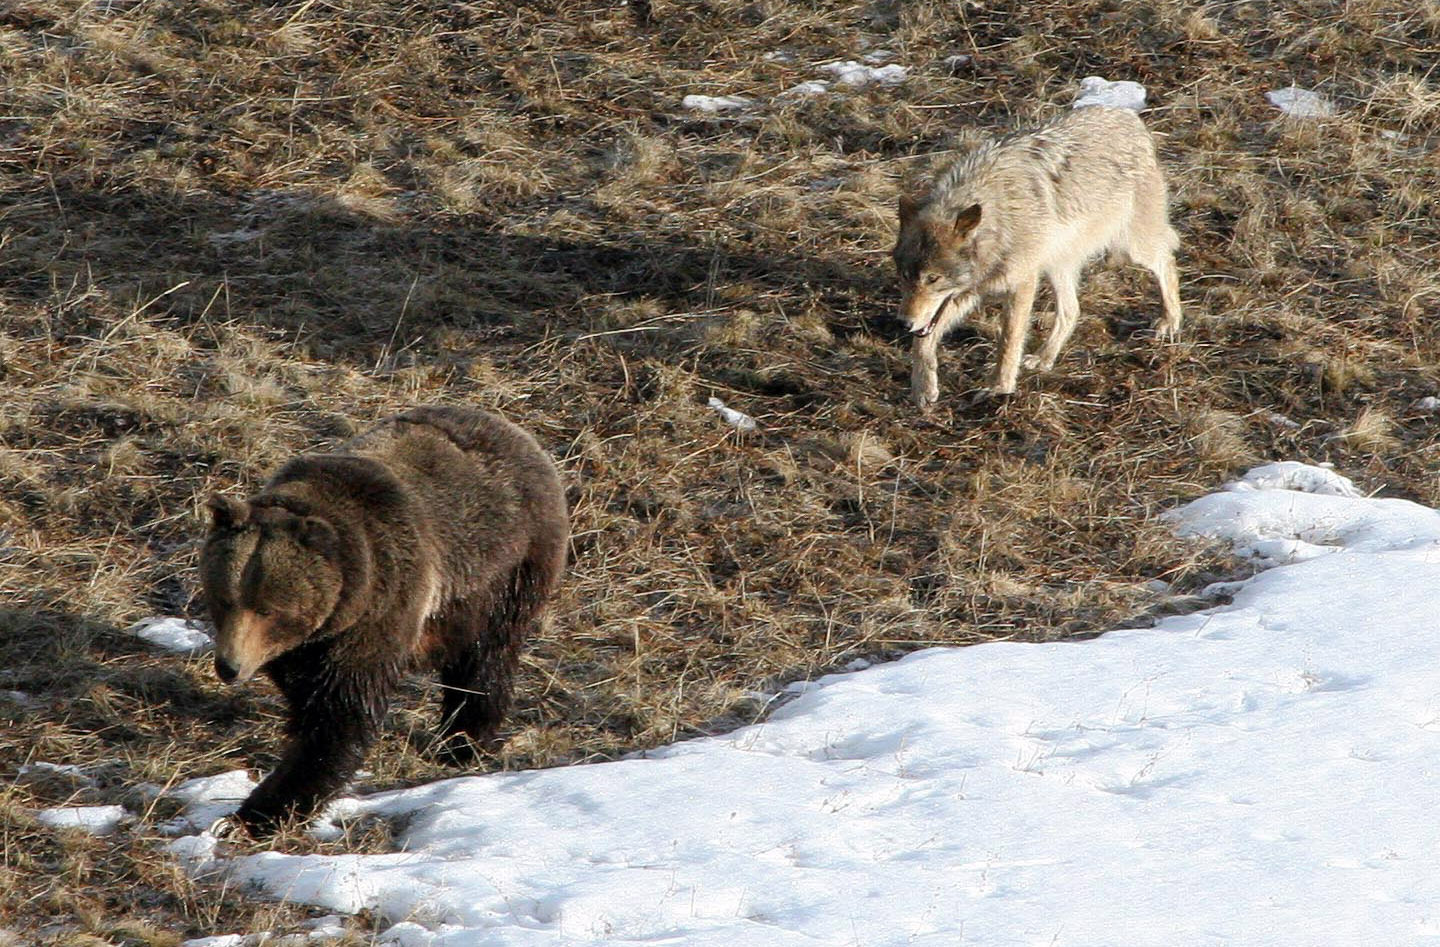 Yellowstone Park releases 2011 'Vital Signs' report on key natural